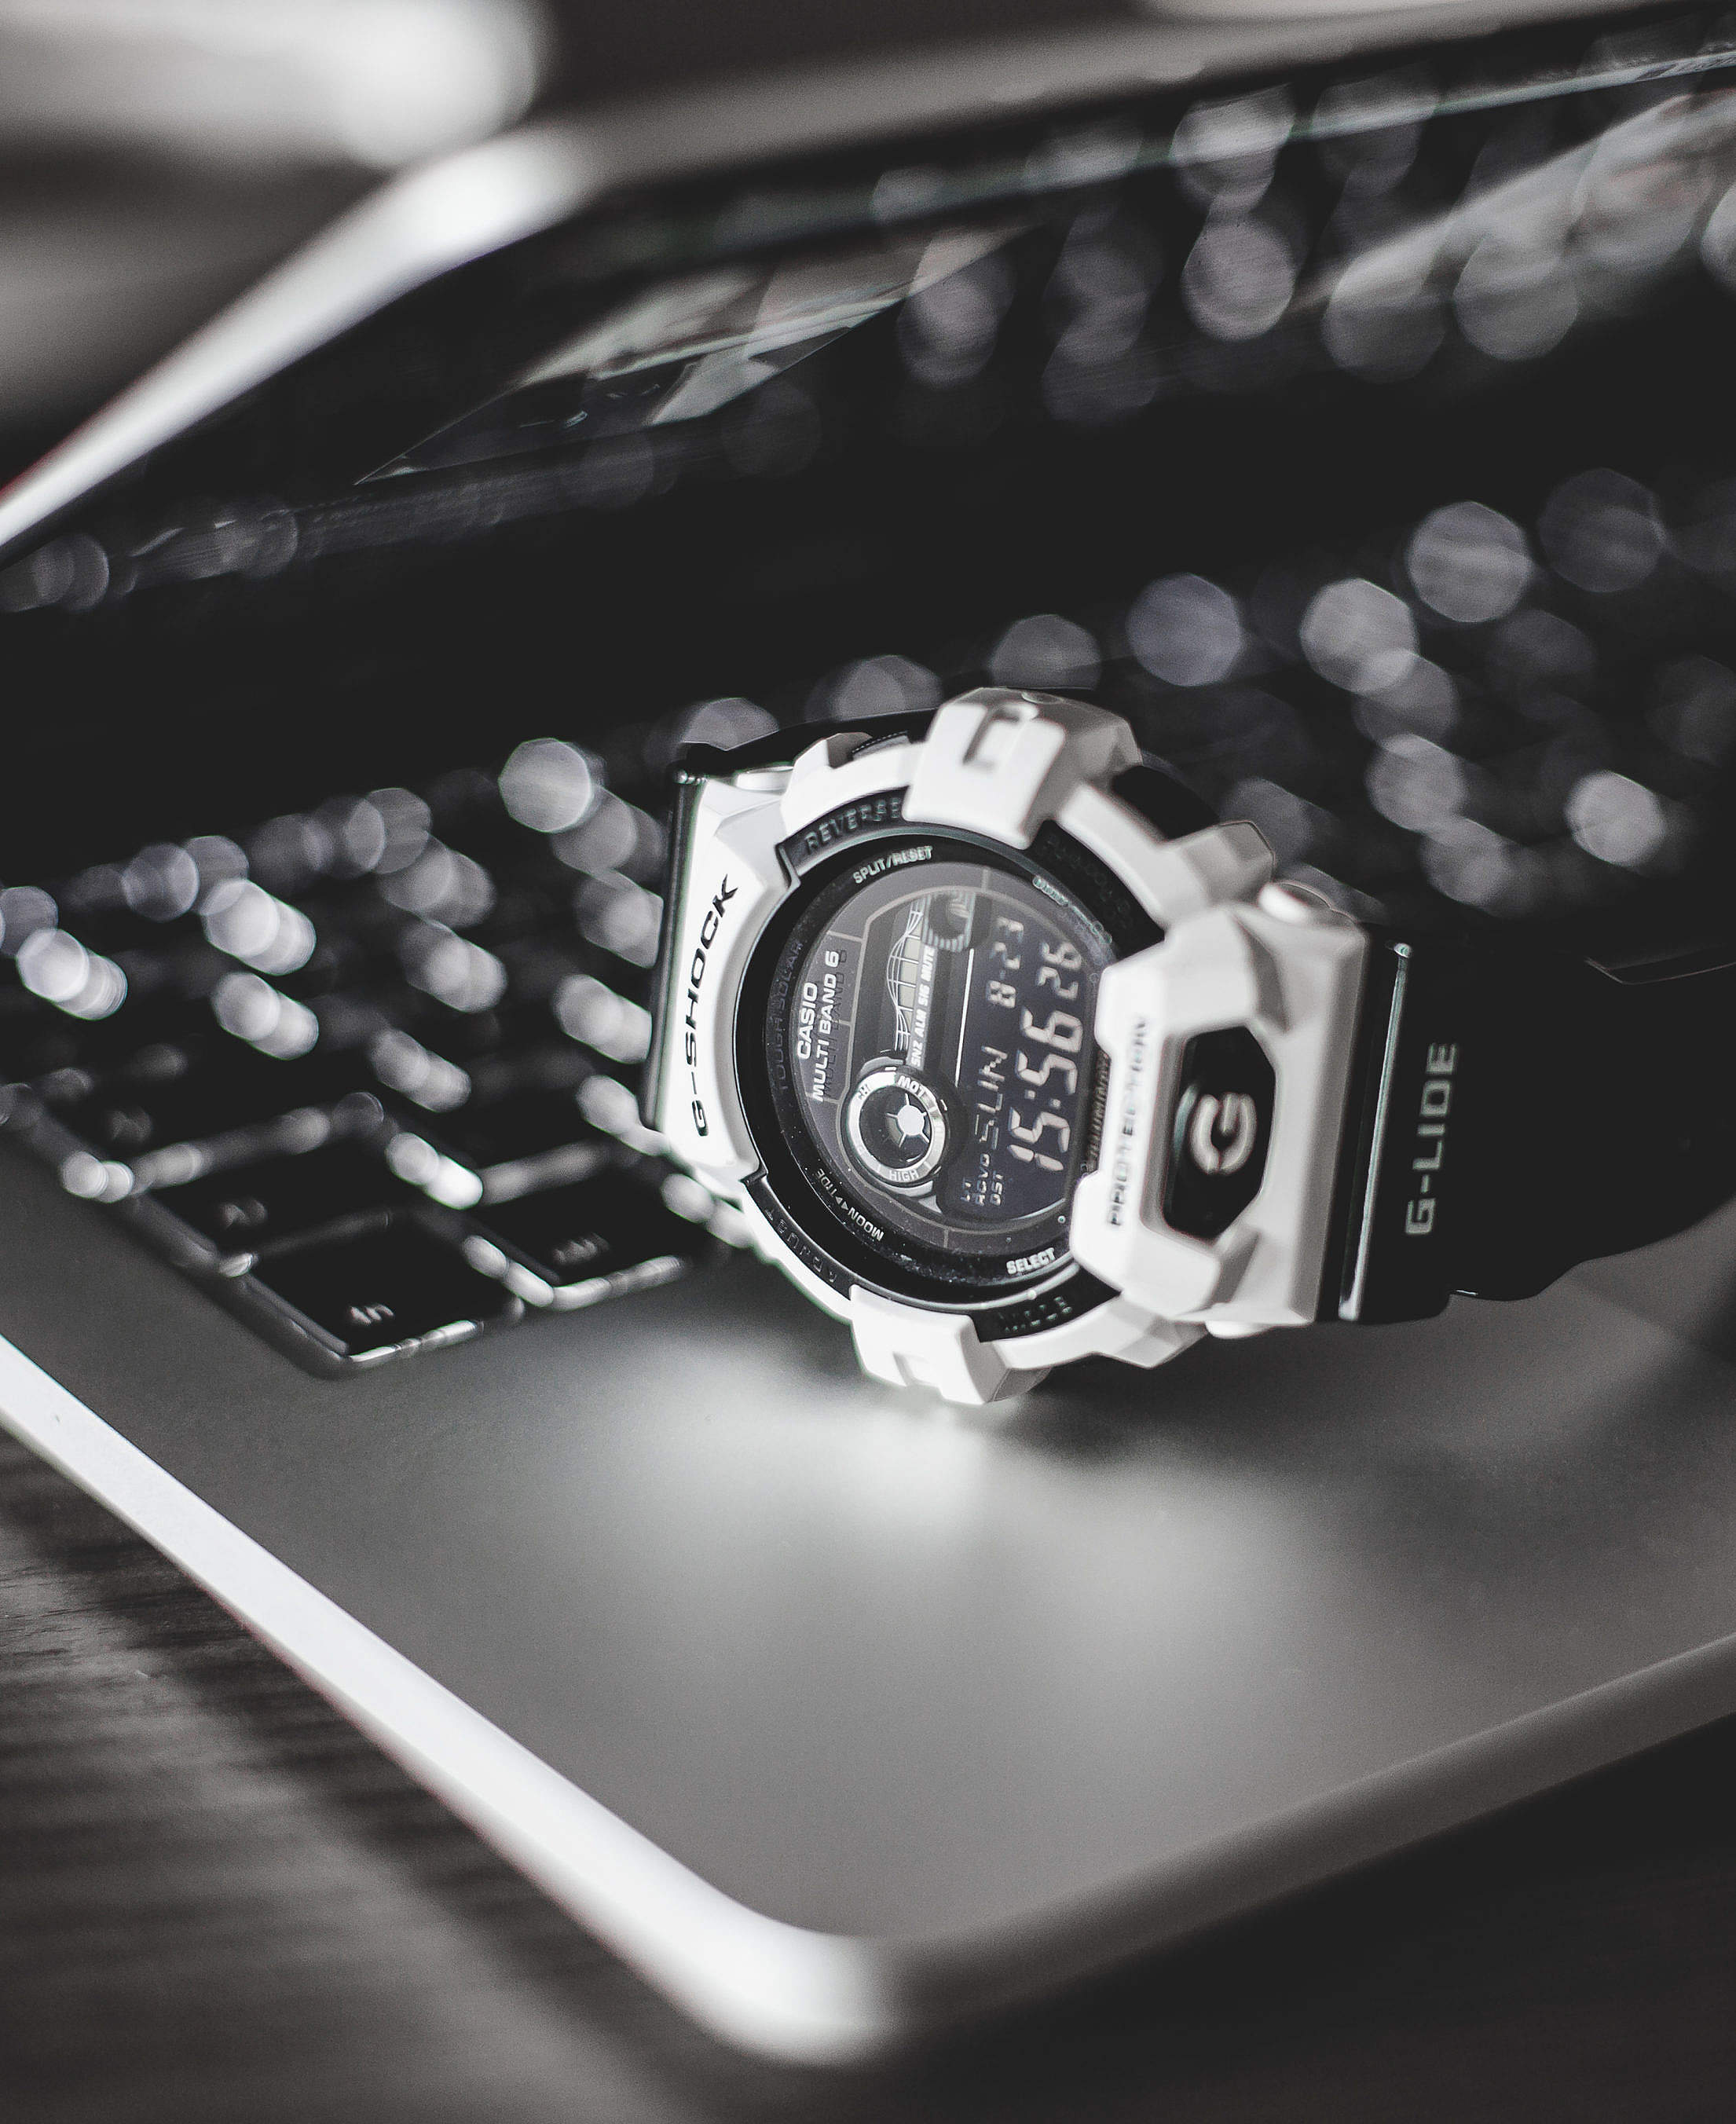 G-Shock Watches on Laptop Free Stock Photo